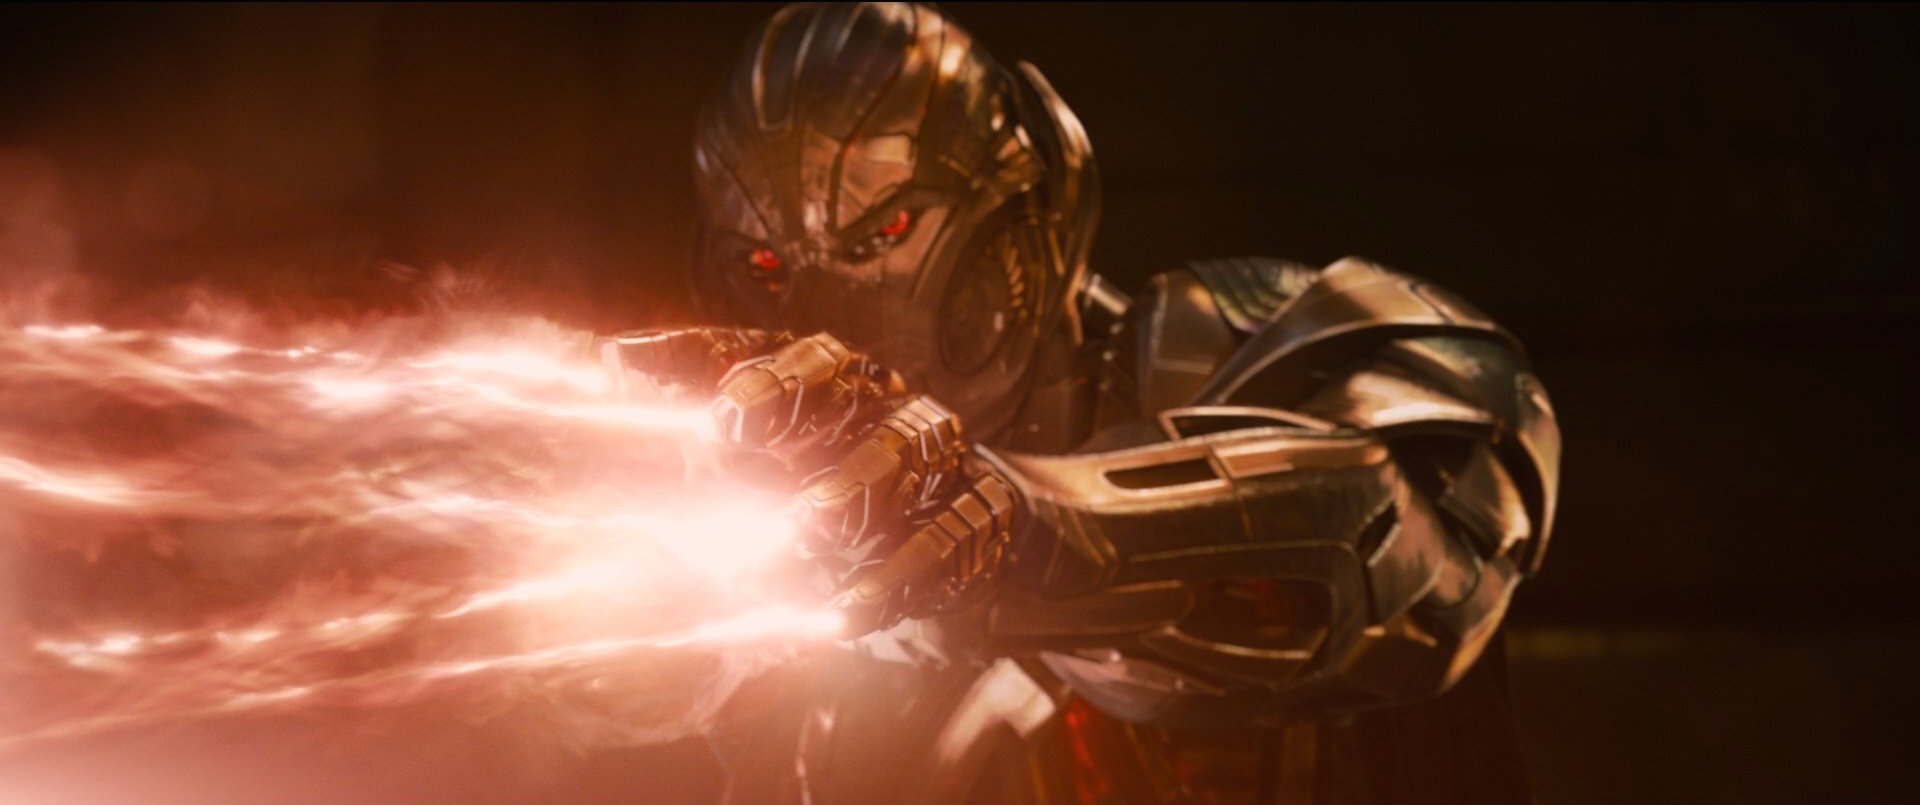 Ultron Fires His Concussion